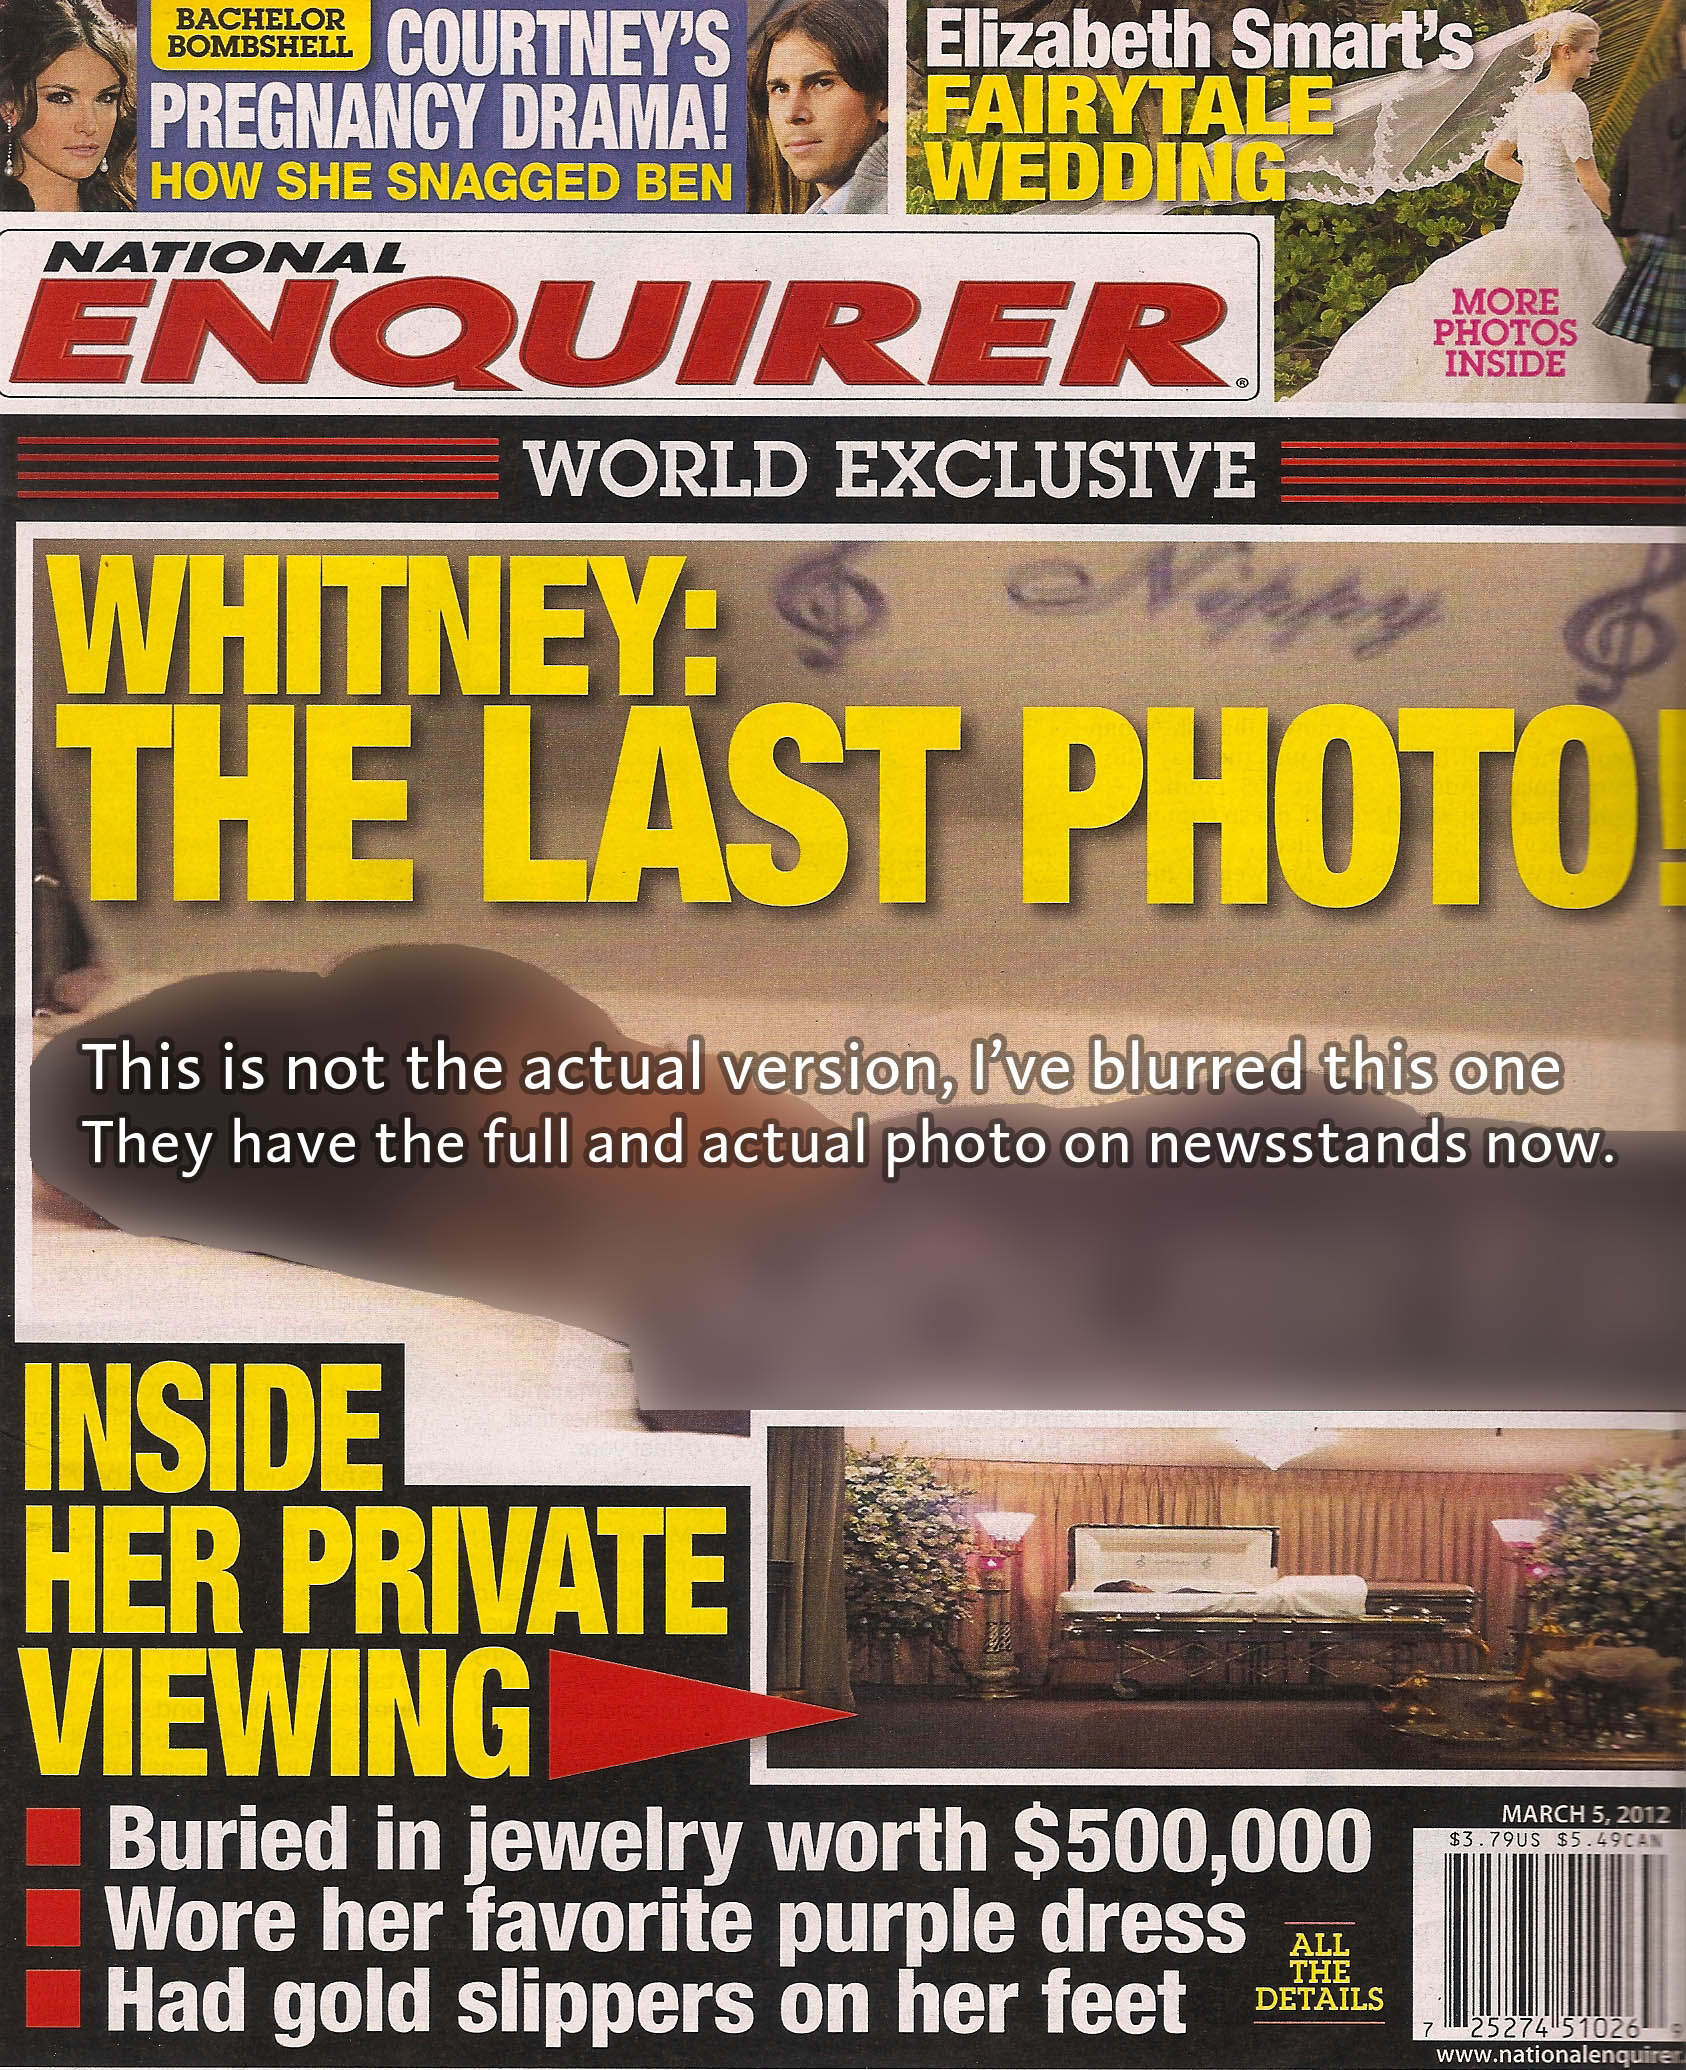 Enquirer's cover image of whitney houston in her casket – way too